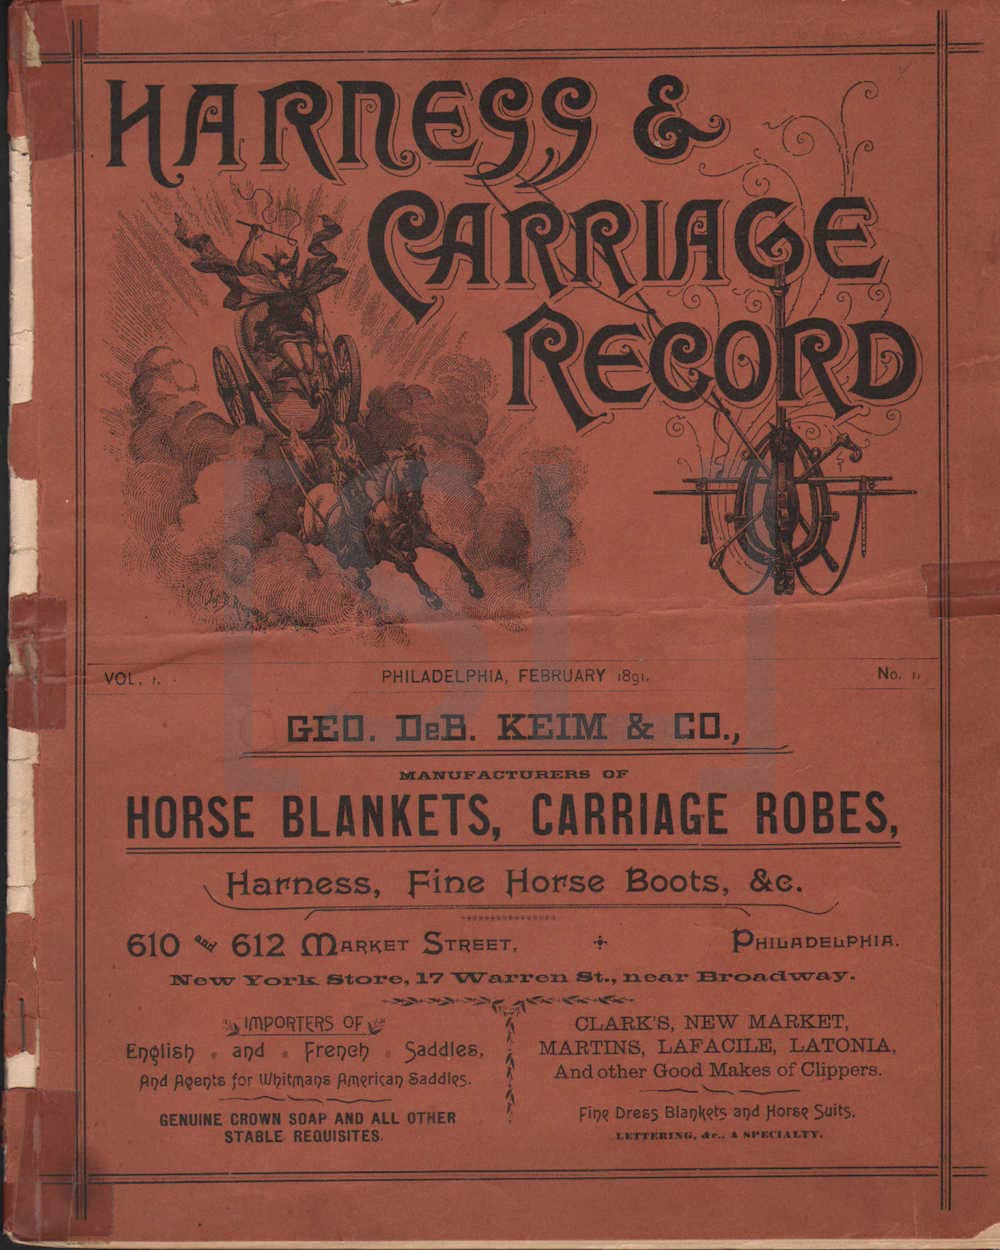 Harness & Carriage Record